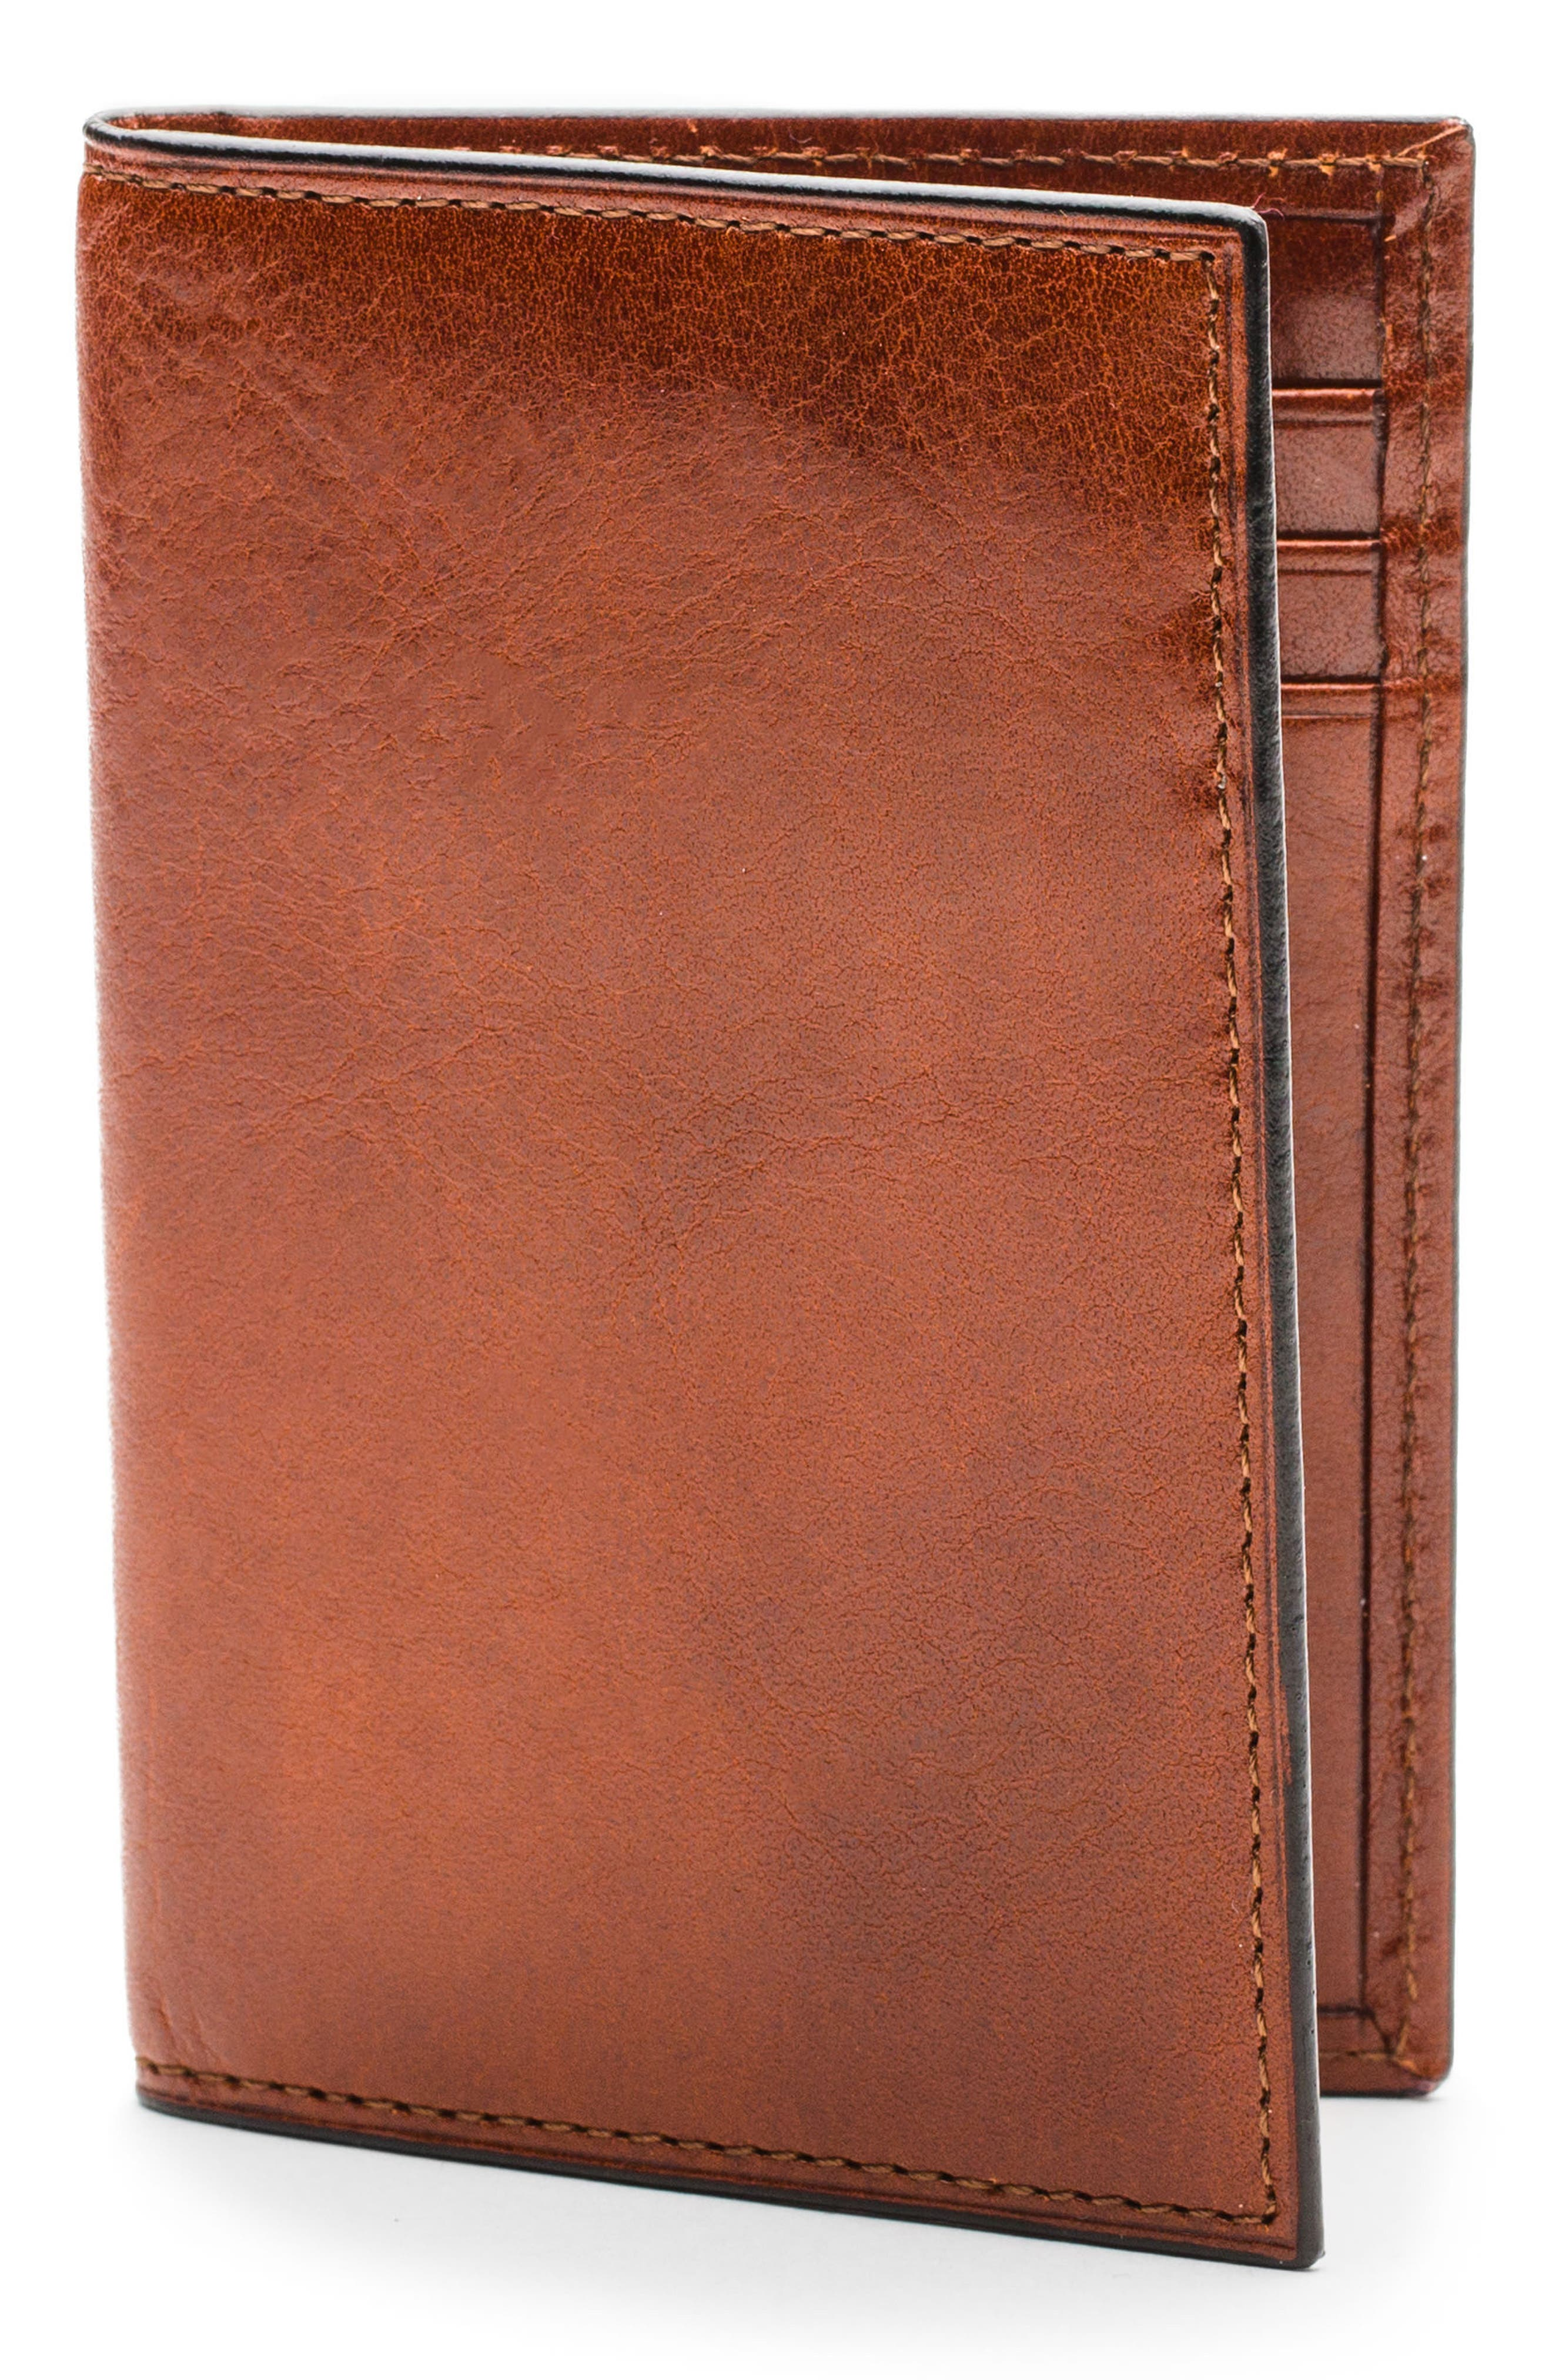 BOSCA Aged Leather Card Case